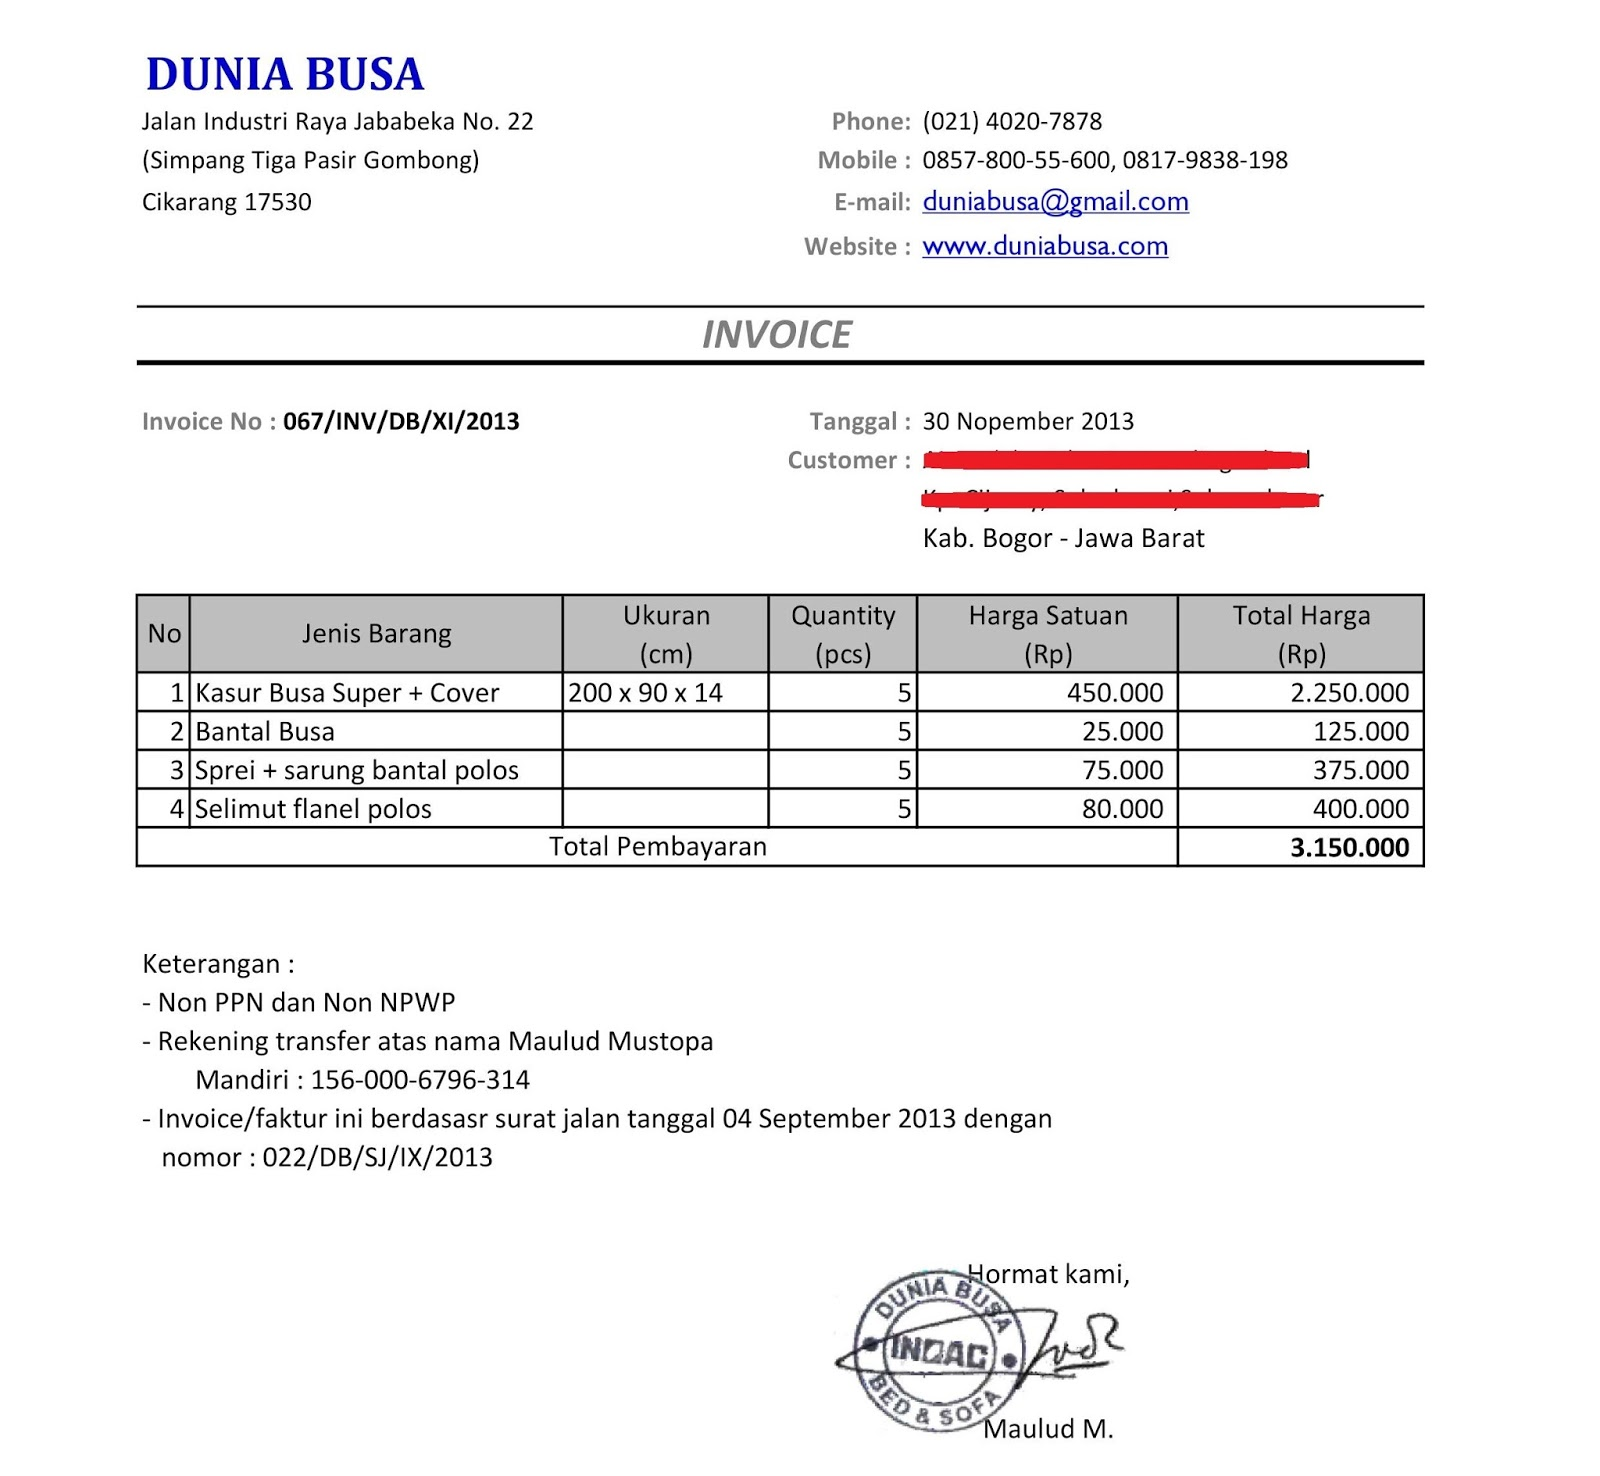 Ultrablogus  Unique Free Invoice Online  Create Invoice Online  Invoice Template  With Extraordinary Contoh Format Invoice Atau Surat Tagihan  Brankas Arsip  Free Invoice Online With Charming Home Repair Invoice Also Free Blank Invoice Forms In Addition Professional Services Invoice Template And Word Templates Invoice As Well As Toyota Runner Invoice Price Additionally Invoice Factoring For Small Business From Sklepco With Ultrablogus  Extraordinary Free Invoice Online  Create Invoice Online  Invoice Template  With Charming Contoh Format Invoice Atau Surat Tagihan  Brankas Arsip  Free Invoice Online And Unique Home Repair Invoice Also Free Blank Invoice Forms In Addition Professional Services Invoice Template From Sklepco